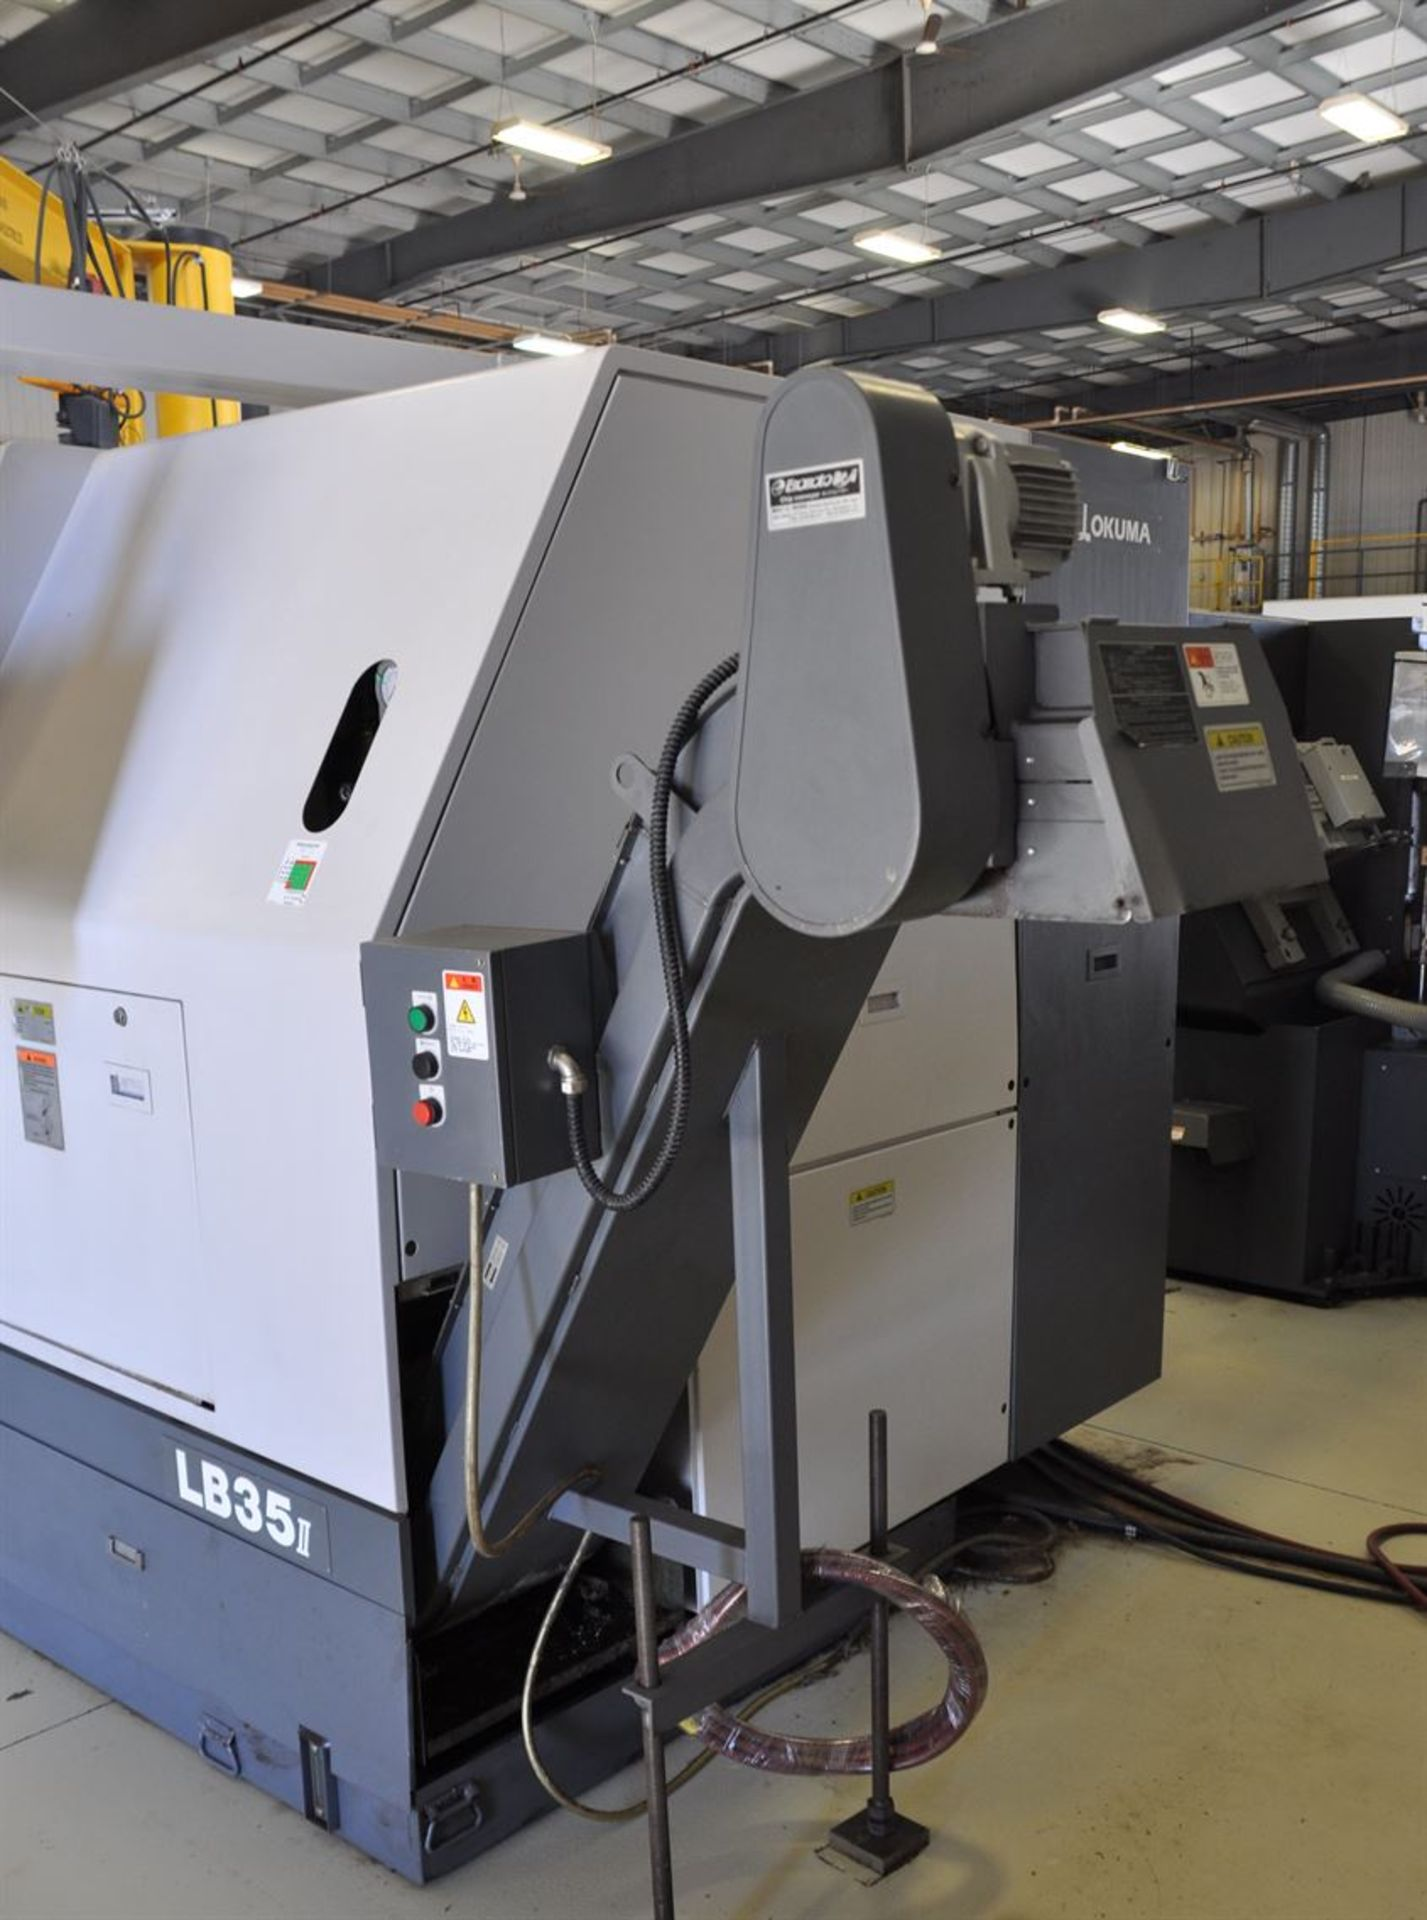 "2012 OKUMA LB35 II Turning Centers, s/n 166500 w/ OSP-P200L Control, 7"" Bore, SCHUNK 600 mm 4 Jaw - Image 7 of 10"